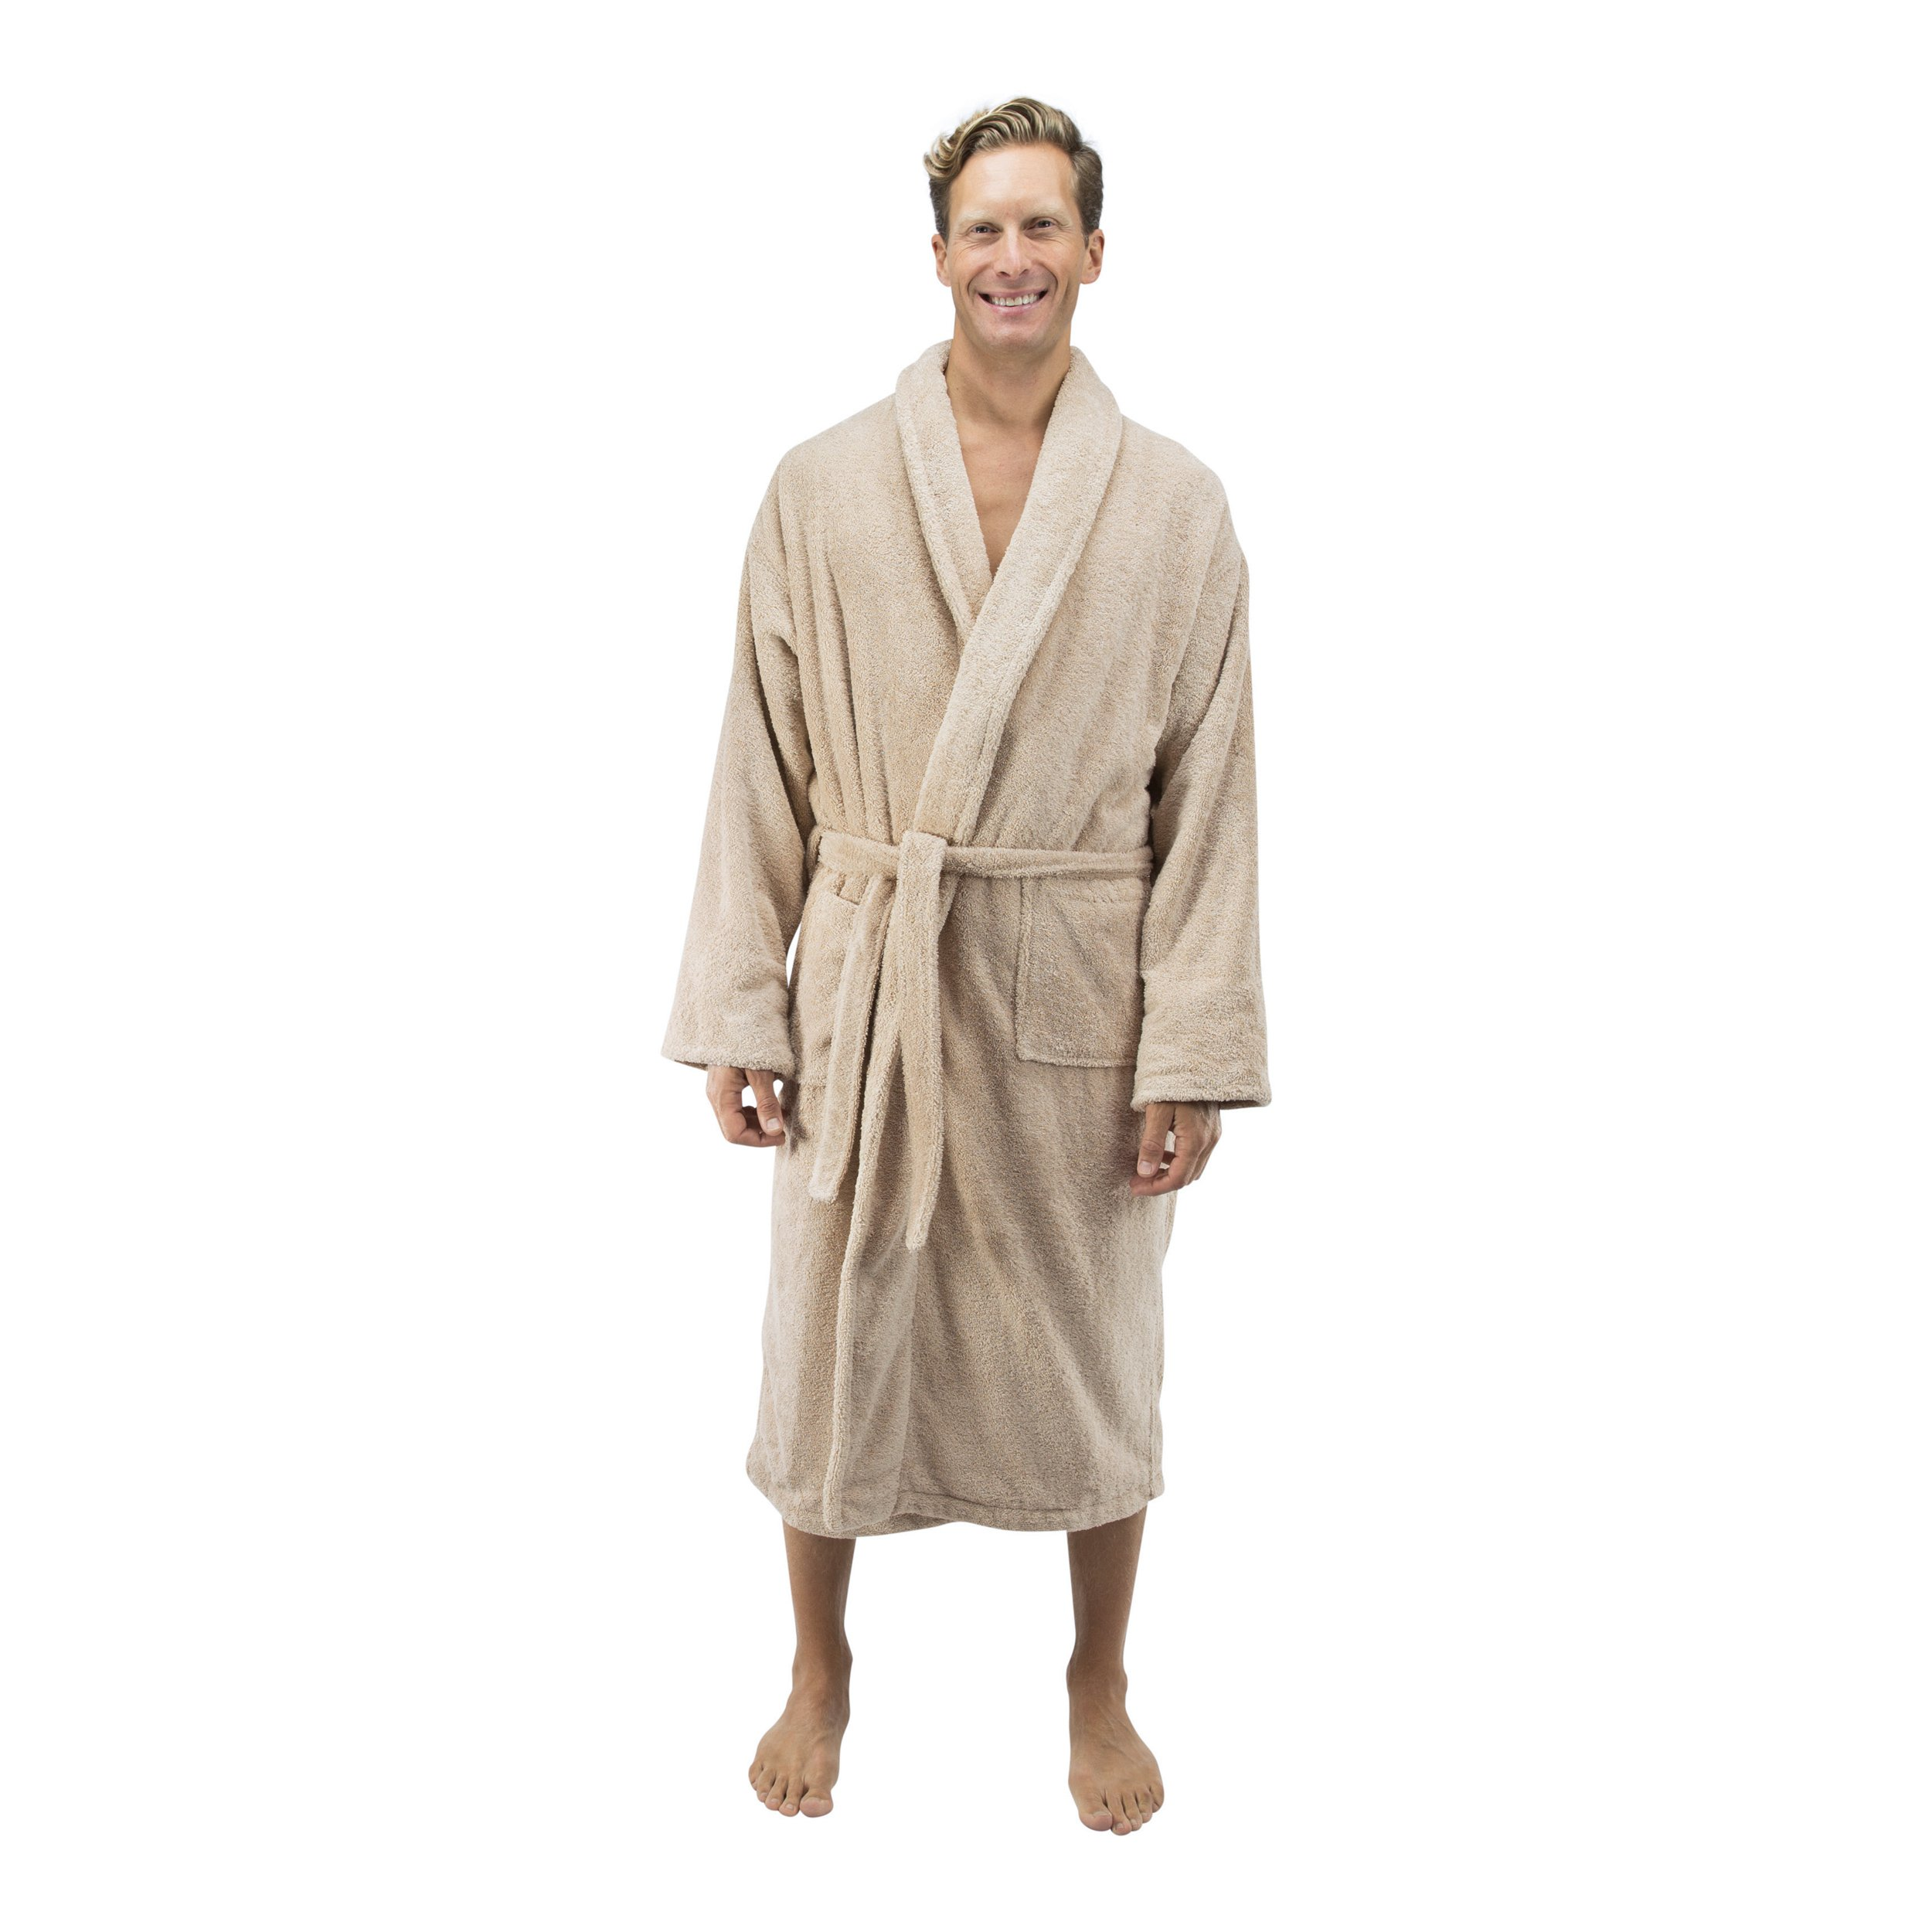 Comfy Robes Personalized Men's Deluxe 20 Oz. Turkish Terry Bathrobe, L/XL (OSFM) Beige